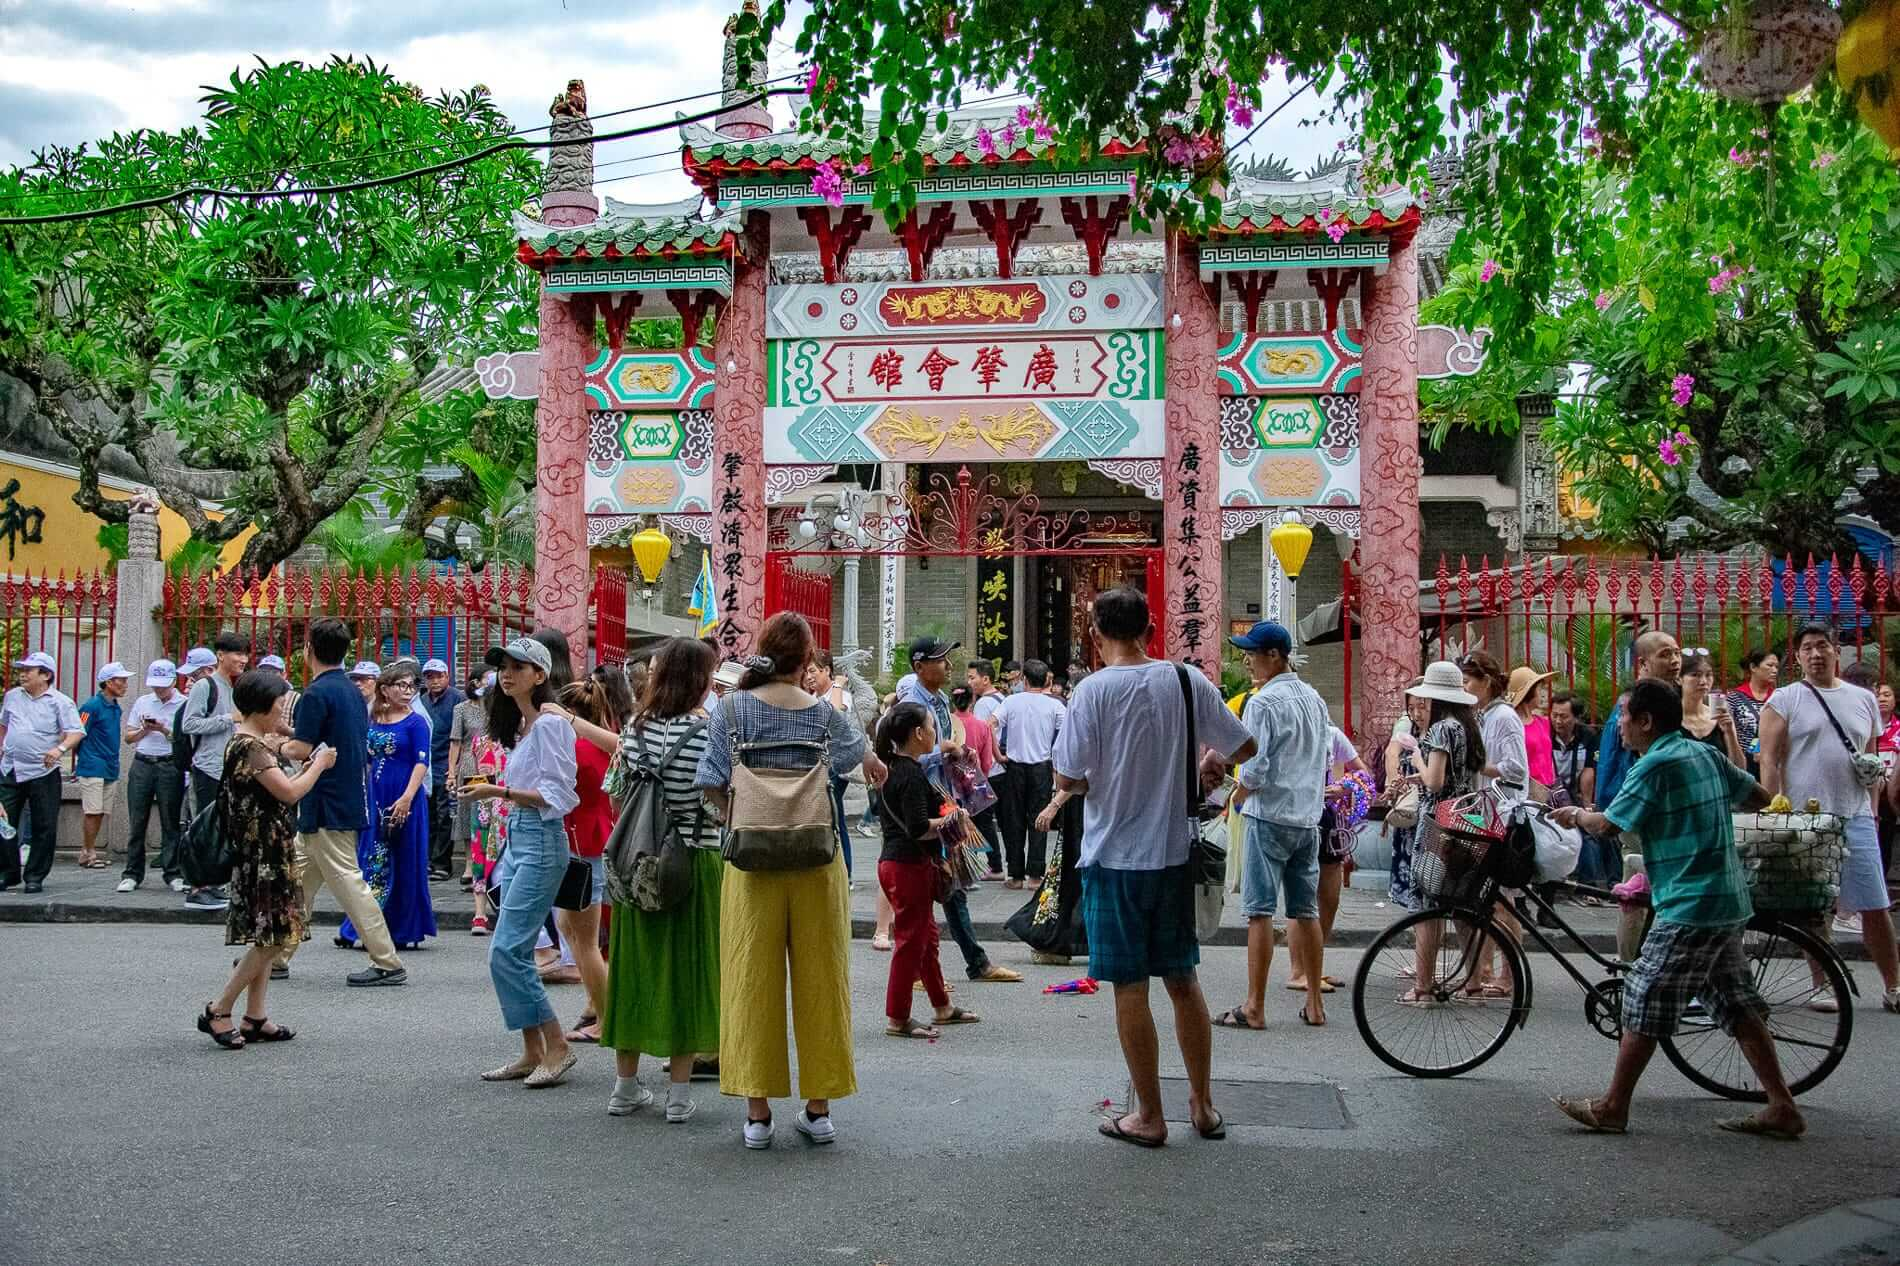 Tourists gather at the exterior of the Quang Trieu - Hoi An Ancient Town